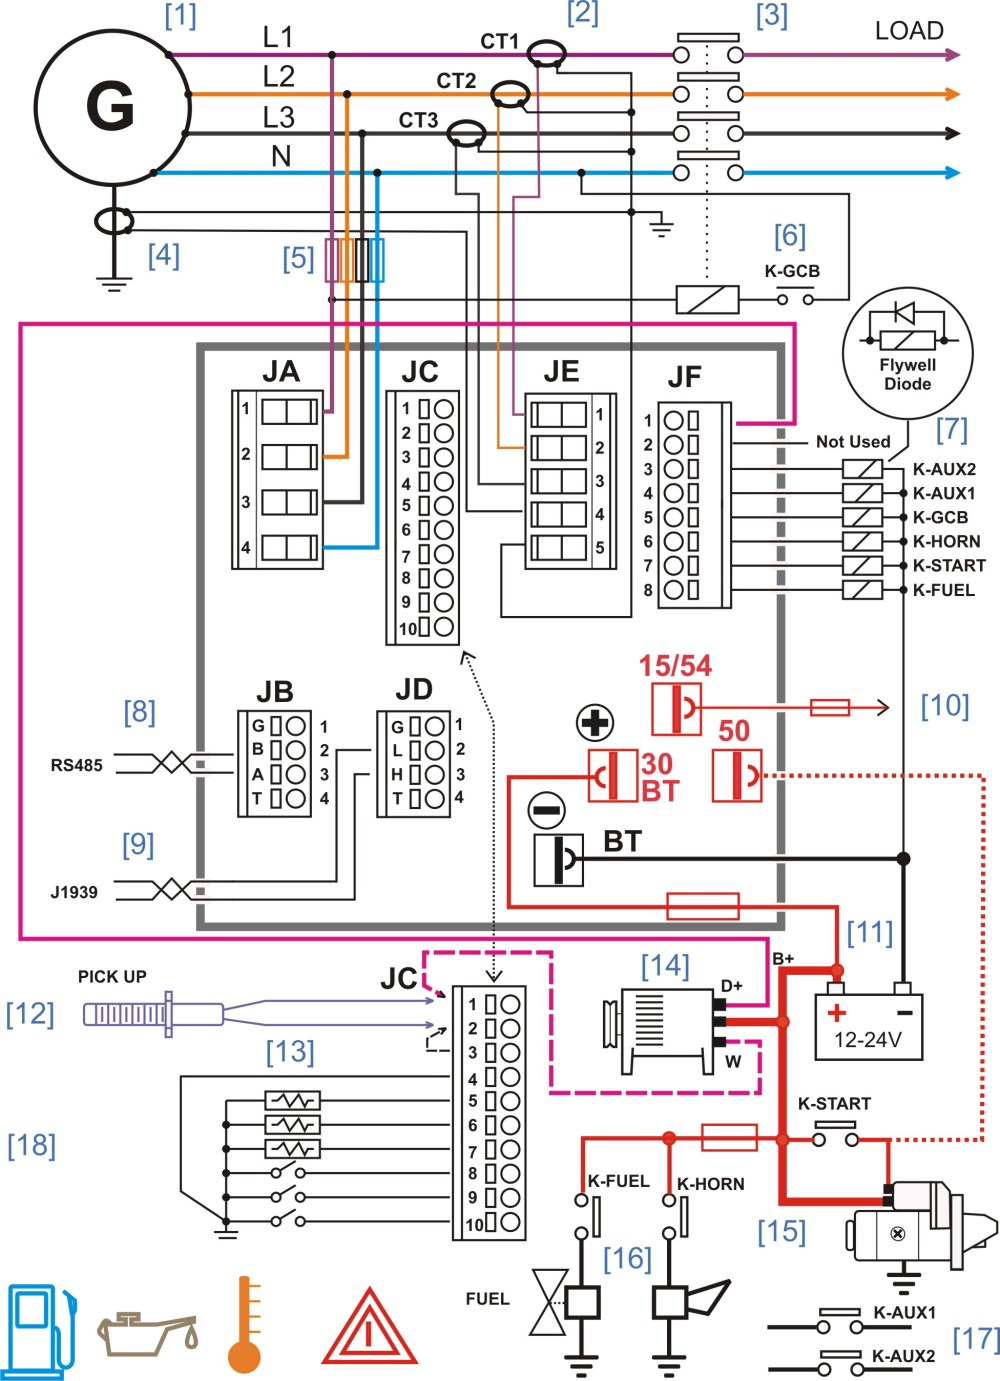 medium resolution of generator controller wiring diagram generator controllers generator controller wiring diagram